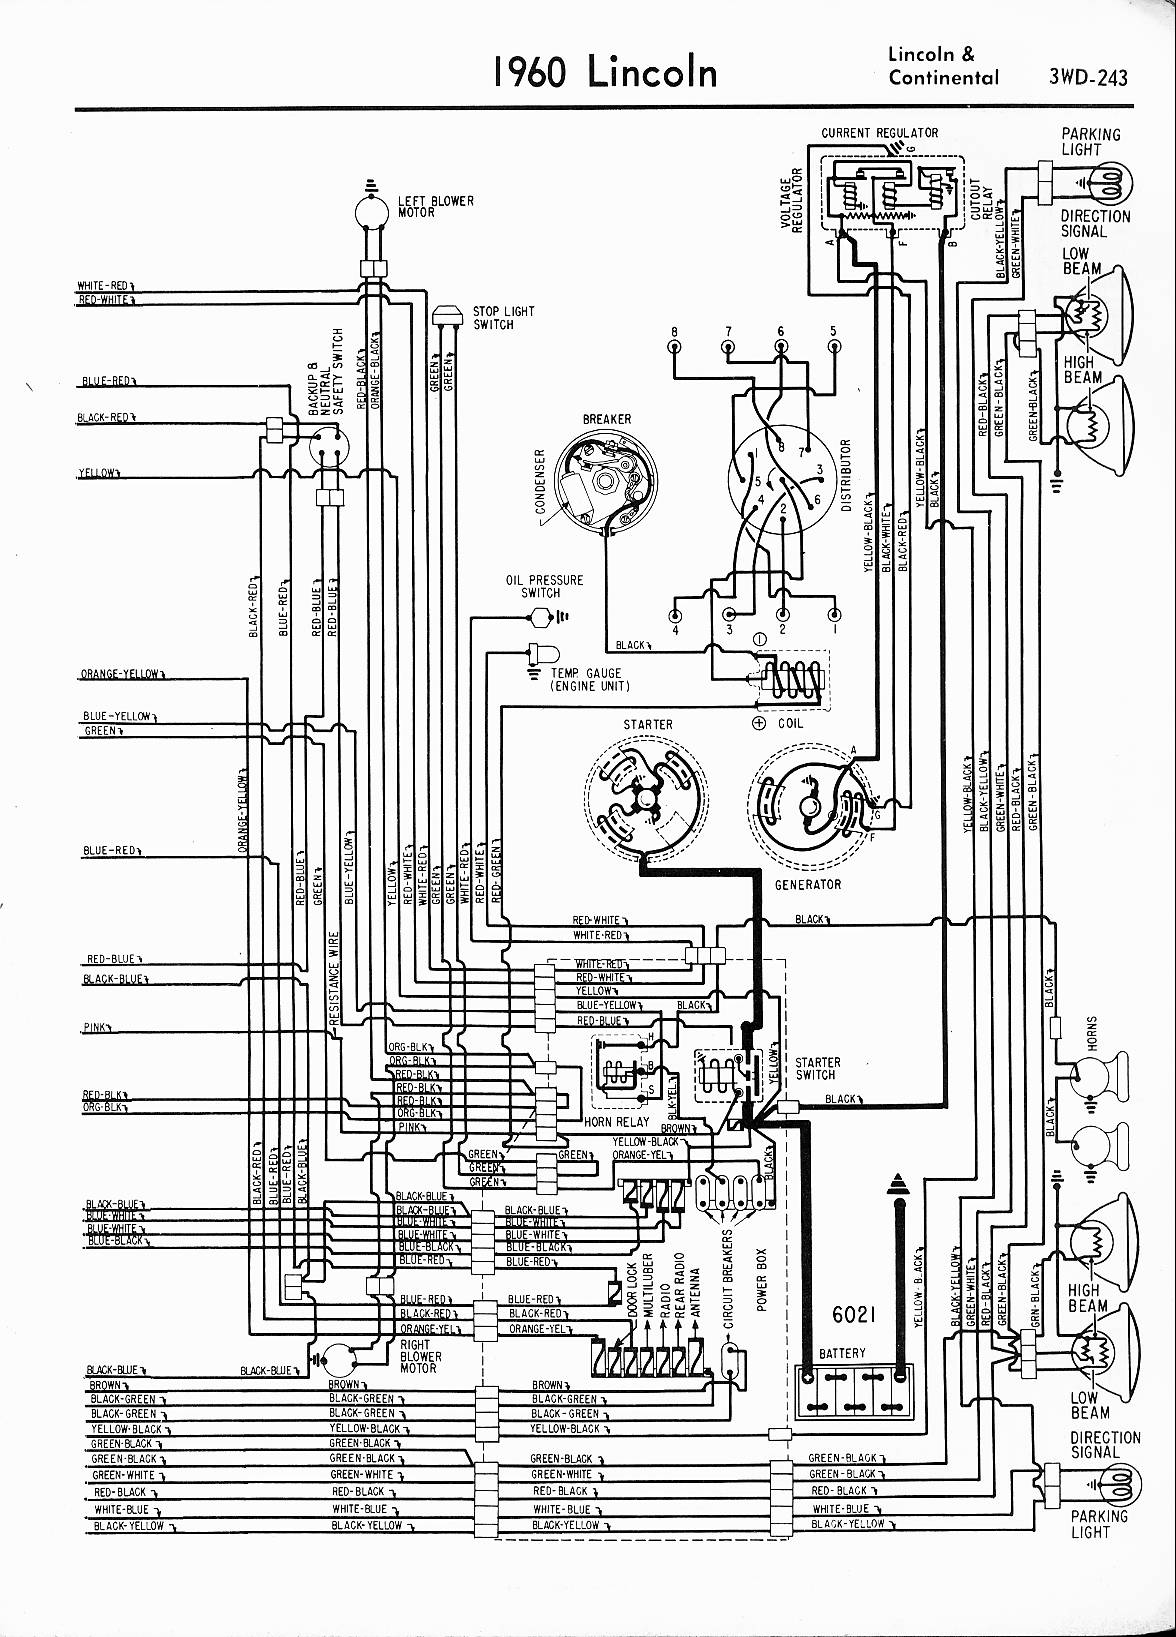 67 lincoln wiring diagrams 1972 lincoln wiring diagrams 1966 lincoln engine diagram. 1966. free printable wiring ... #9